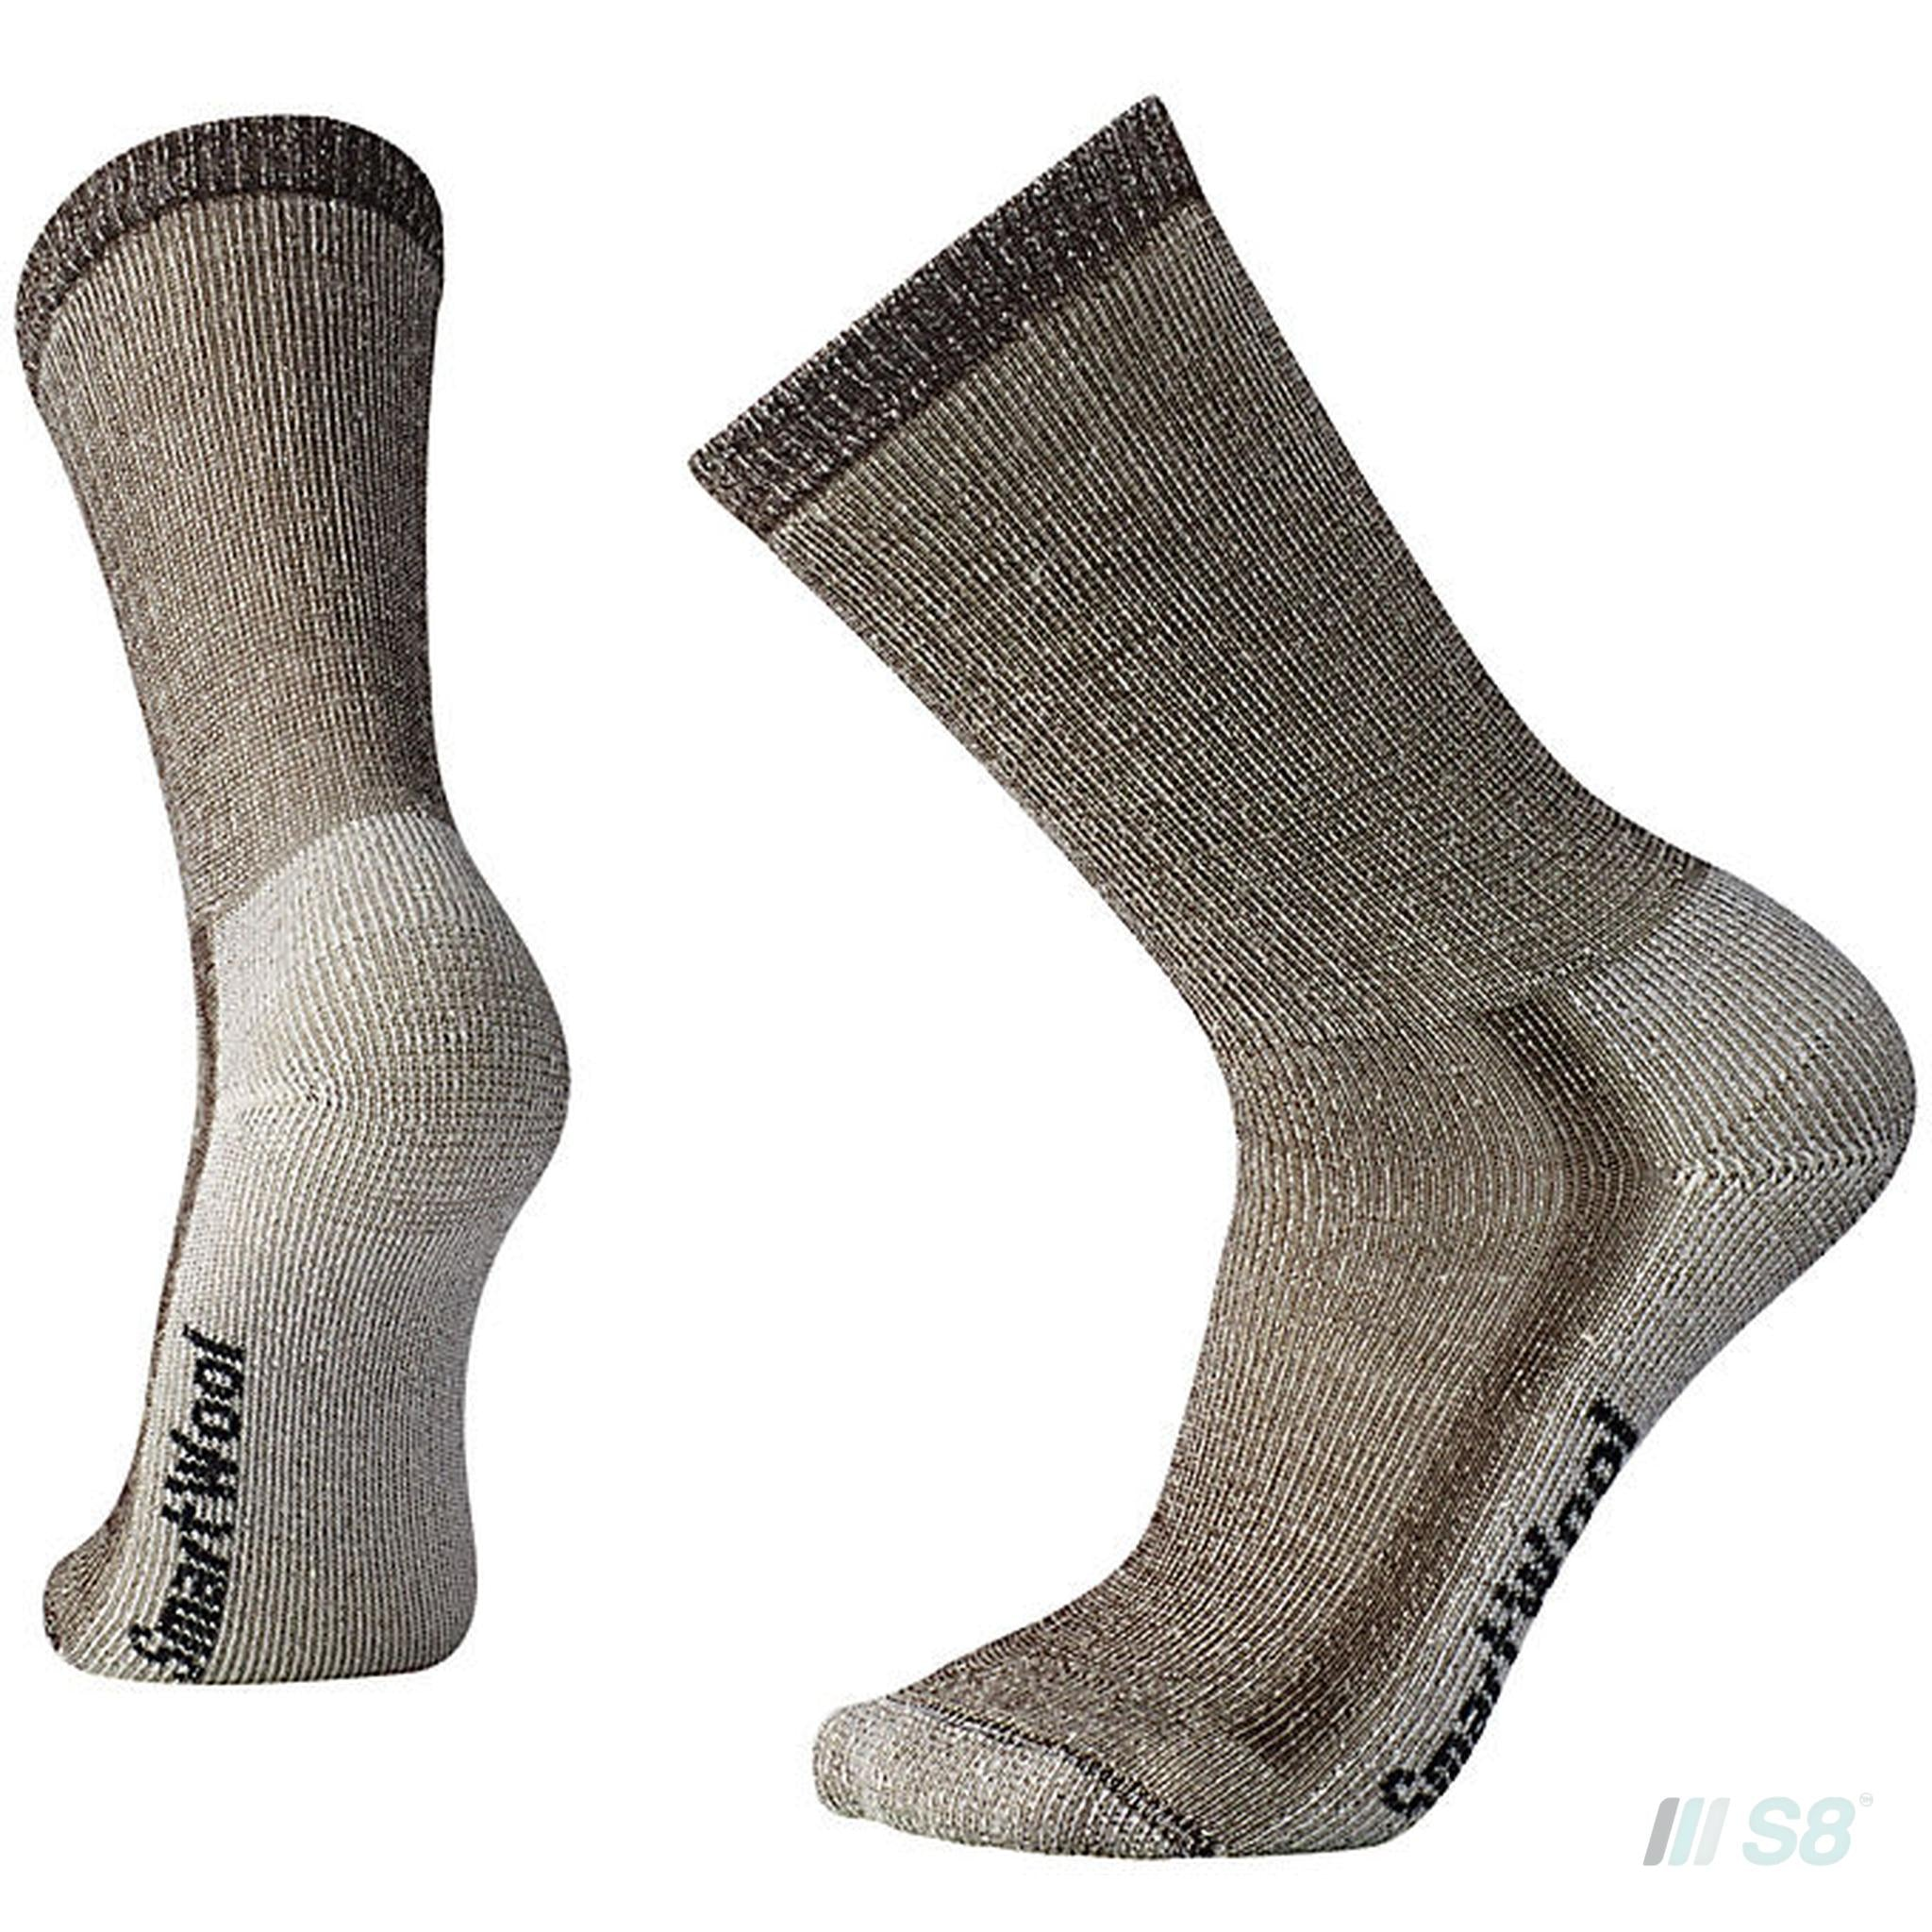 Smartwool Hiking Medium Crew Sock-S8 Products Group-S8 Products Group